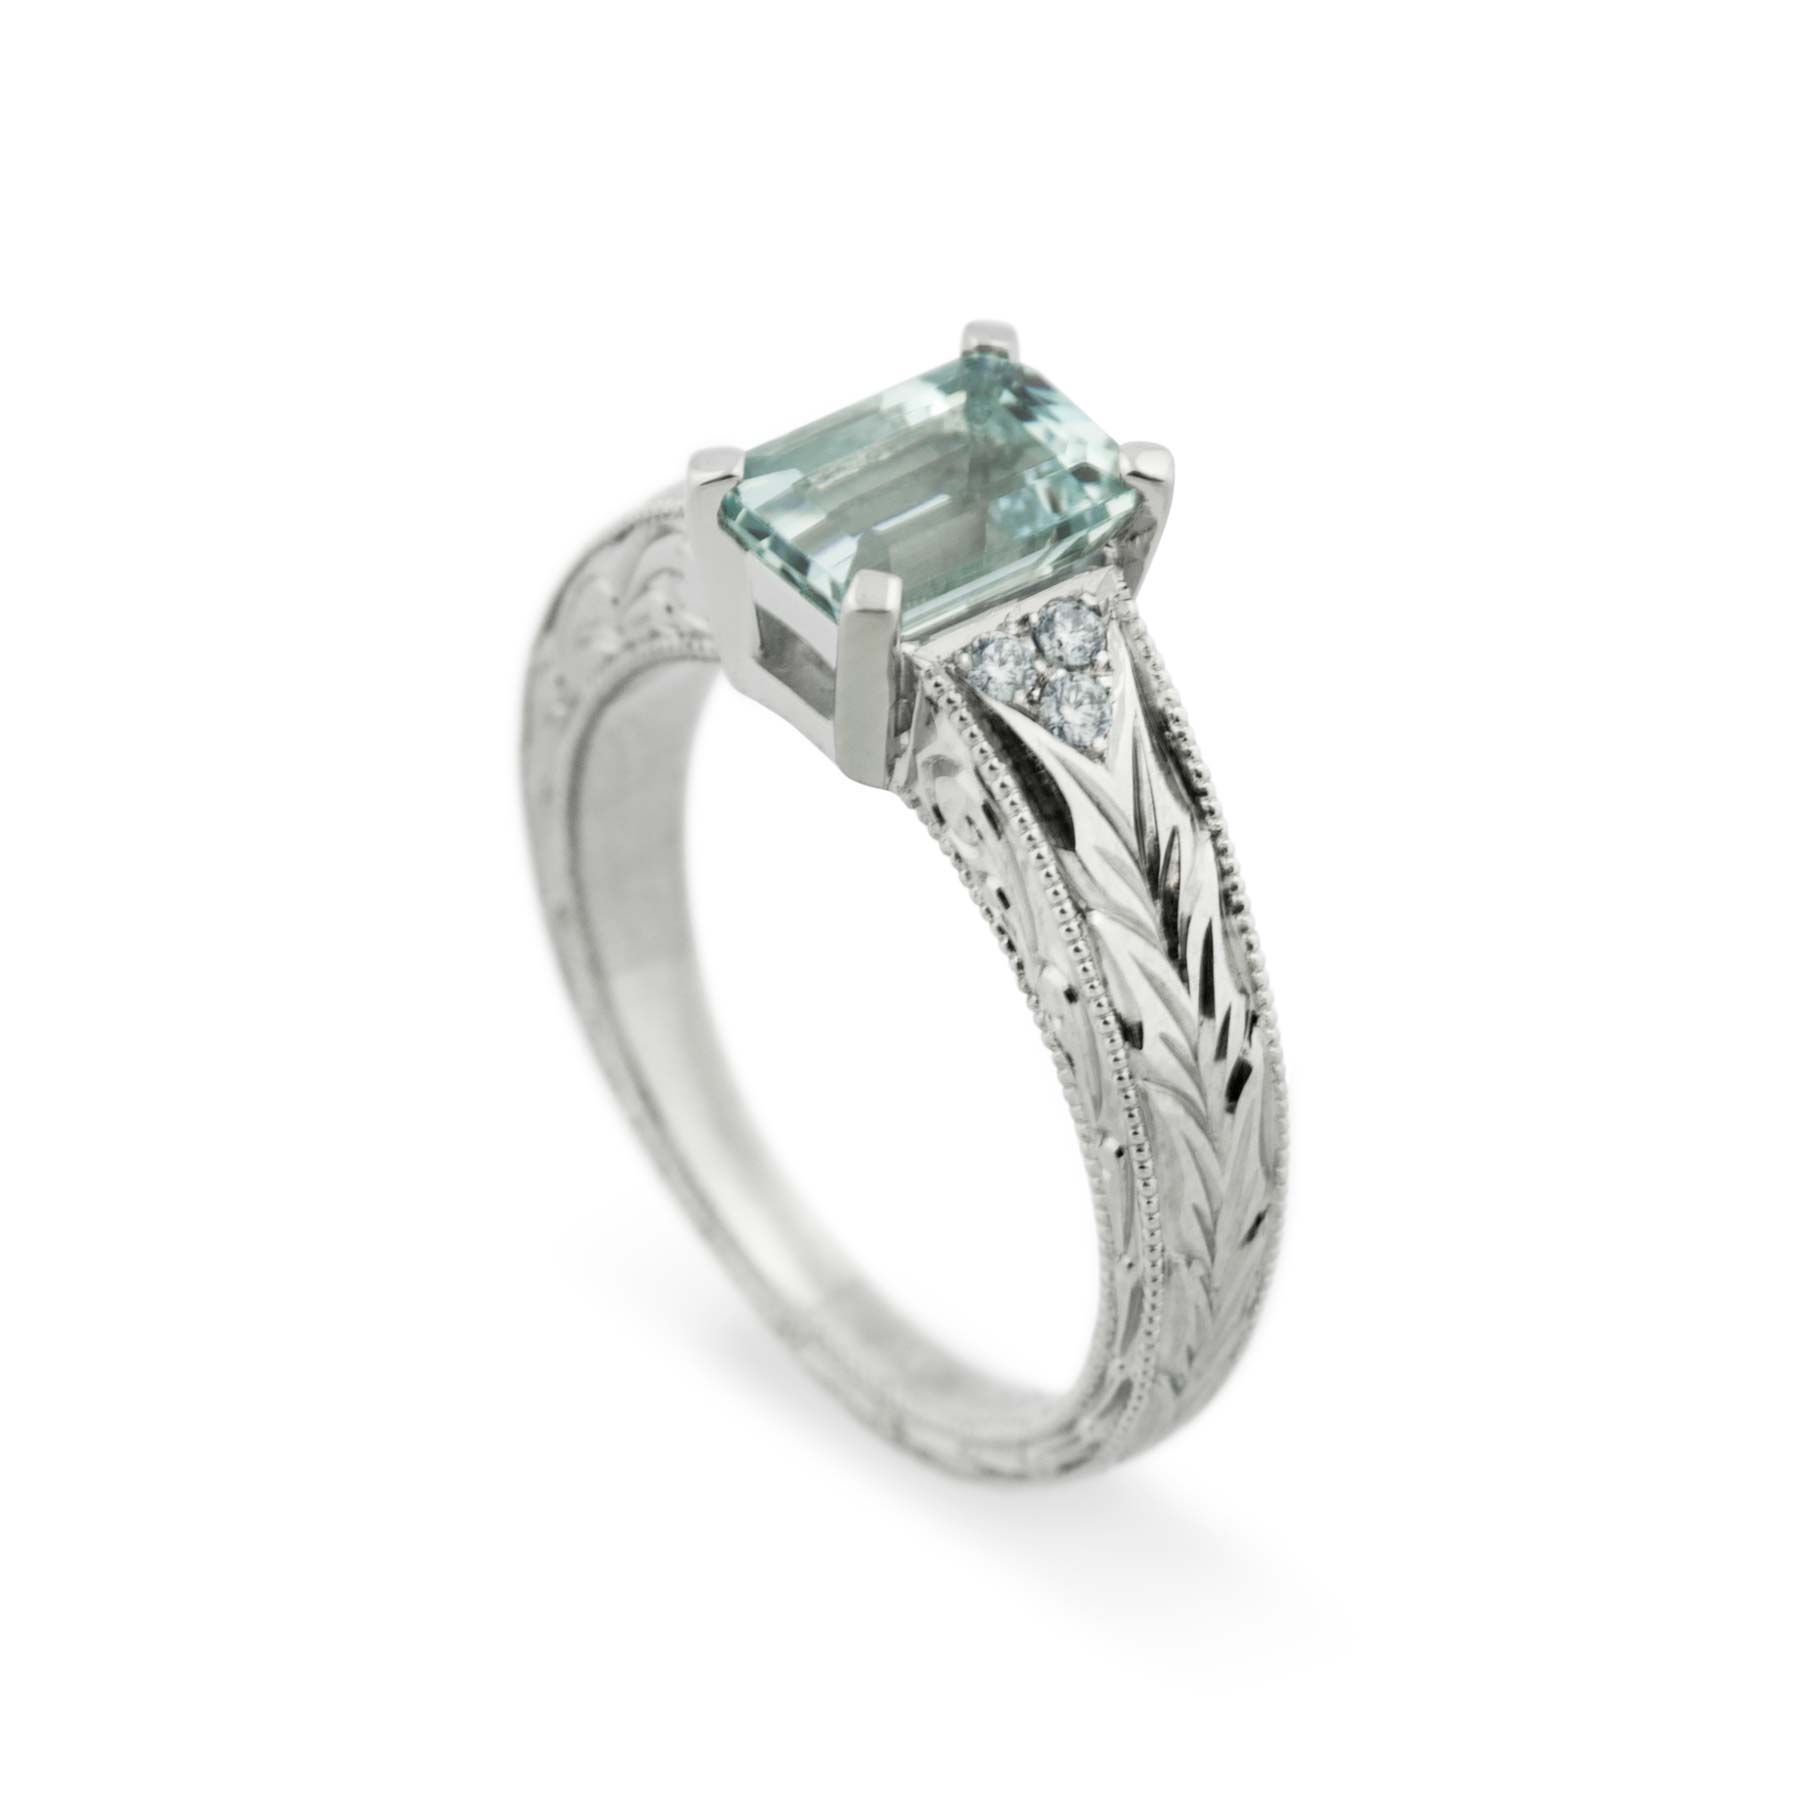 stone semi ideas rare stones precious design door regarding ring for rings engagement